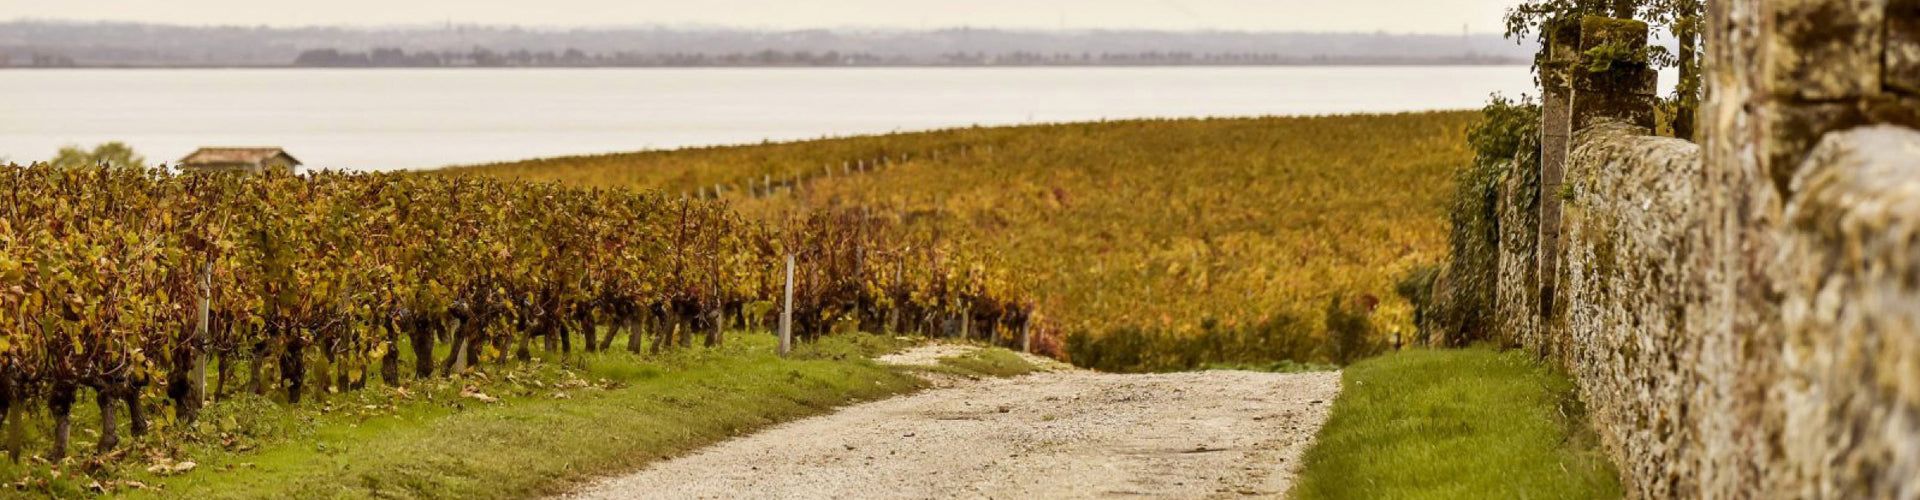 Vineyards in the Saint Estèphe Wine Region of Bordeaux